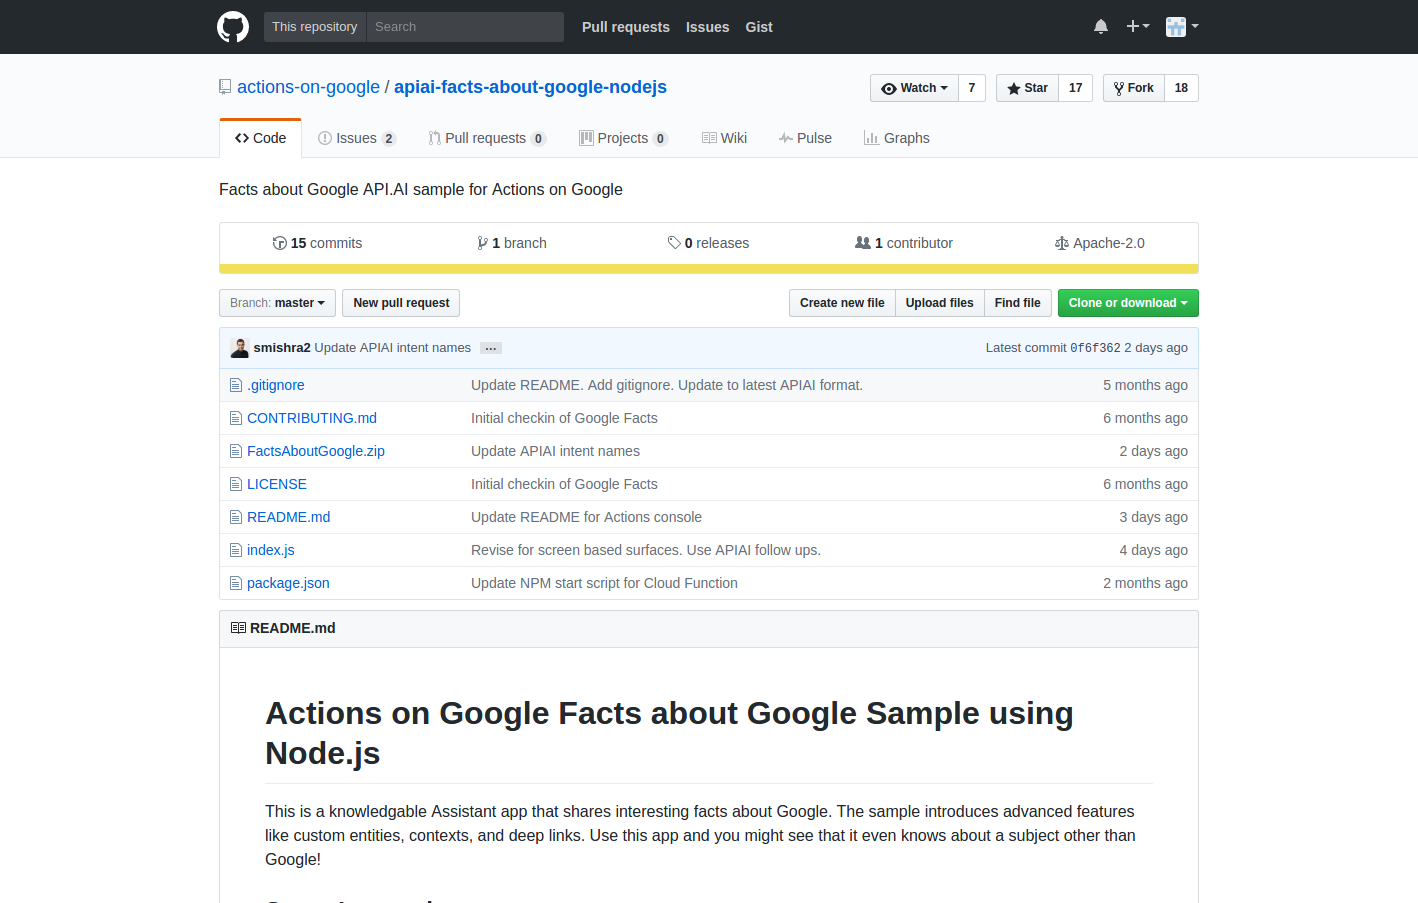 actions on google apiai facts about google nodejs  Facts about Google API.AI sample for Actions on Google.png